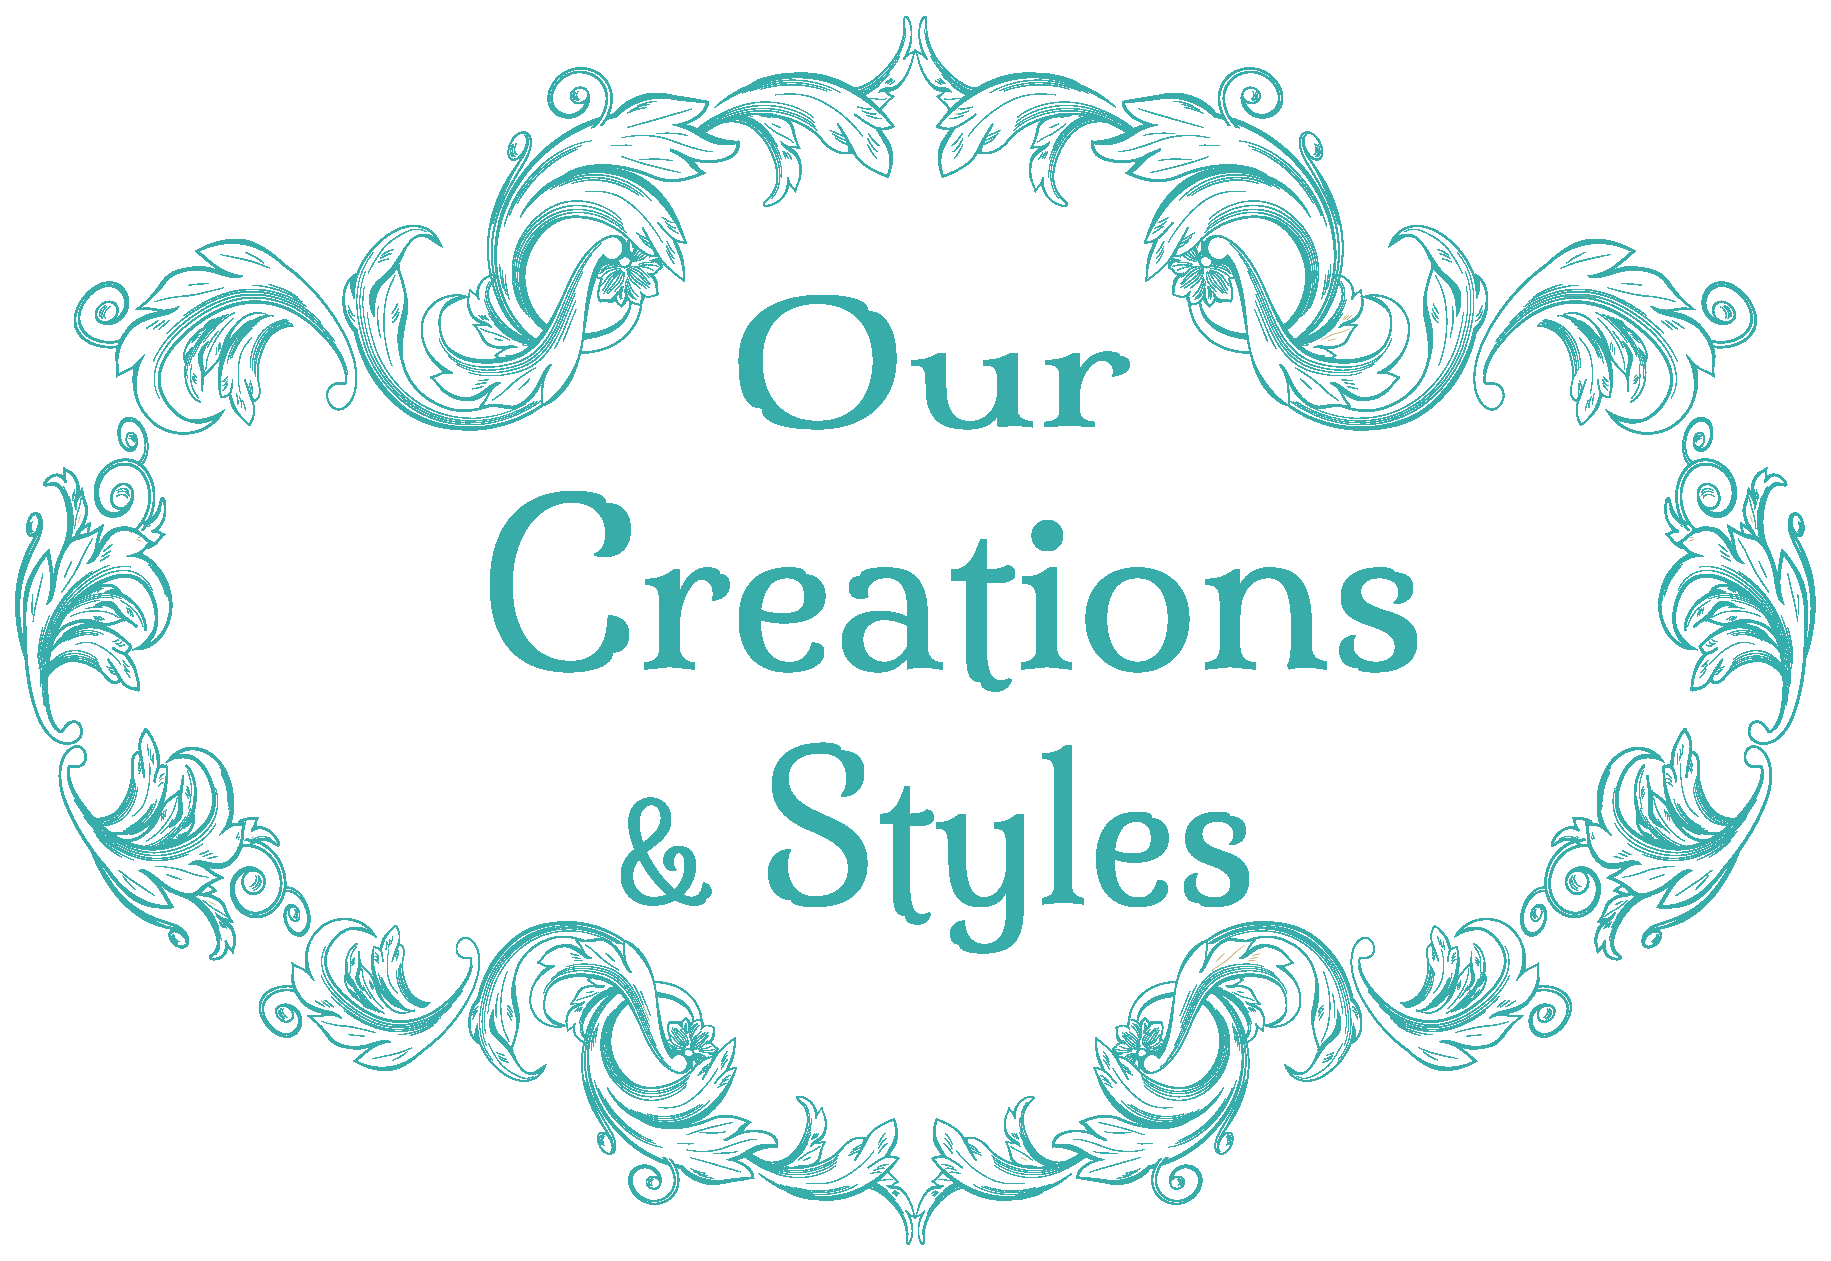 Our Creations & Styles